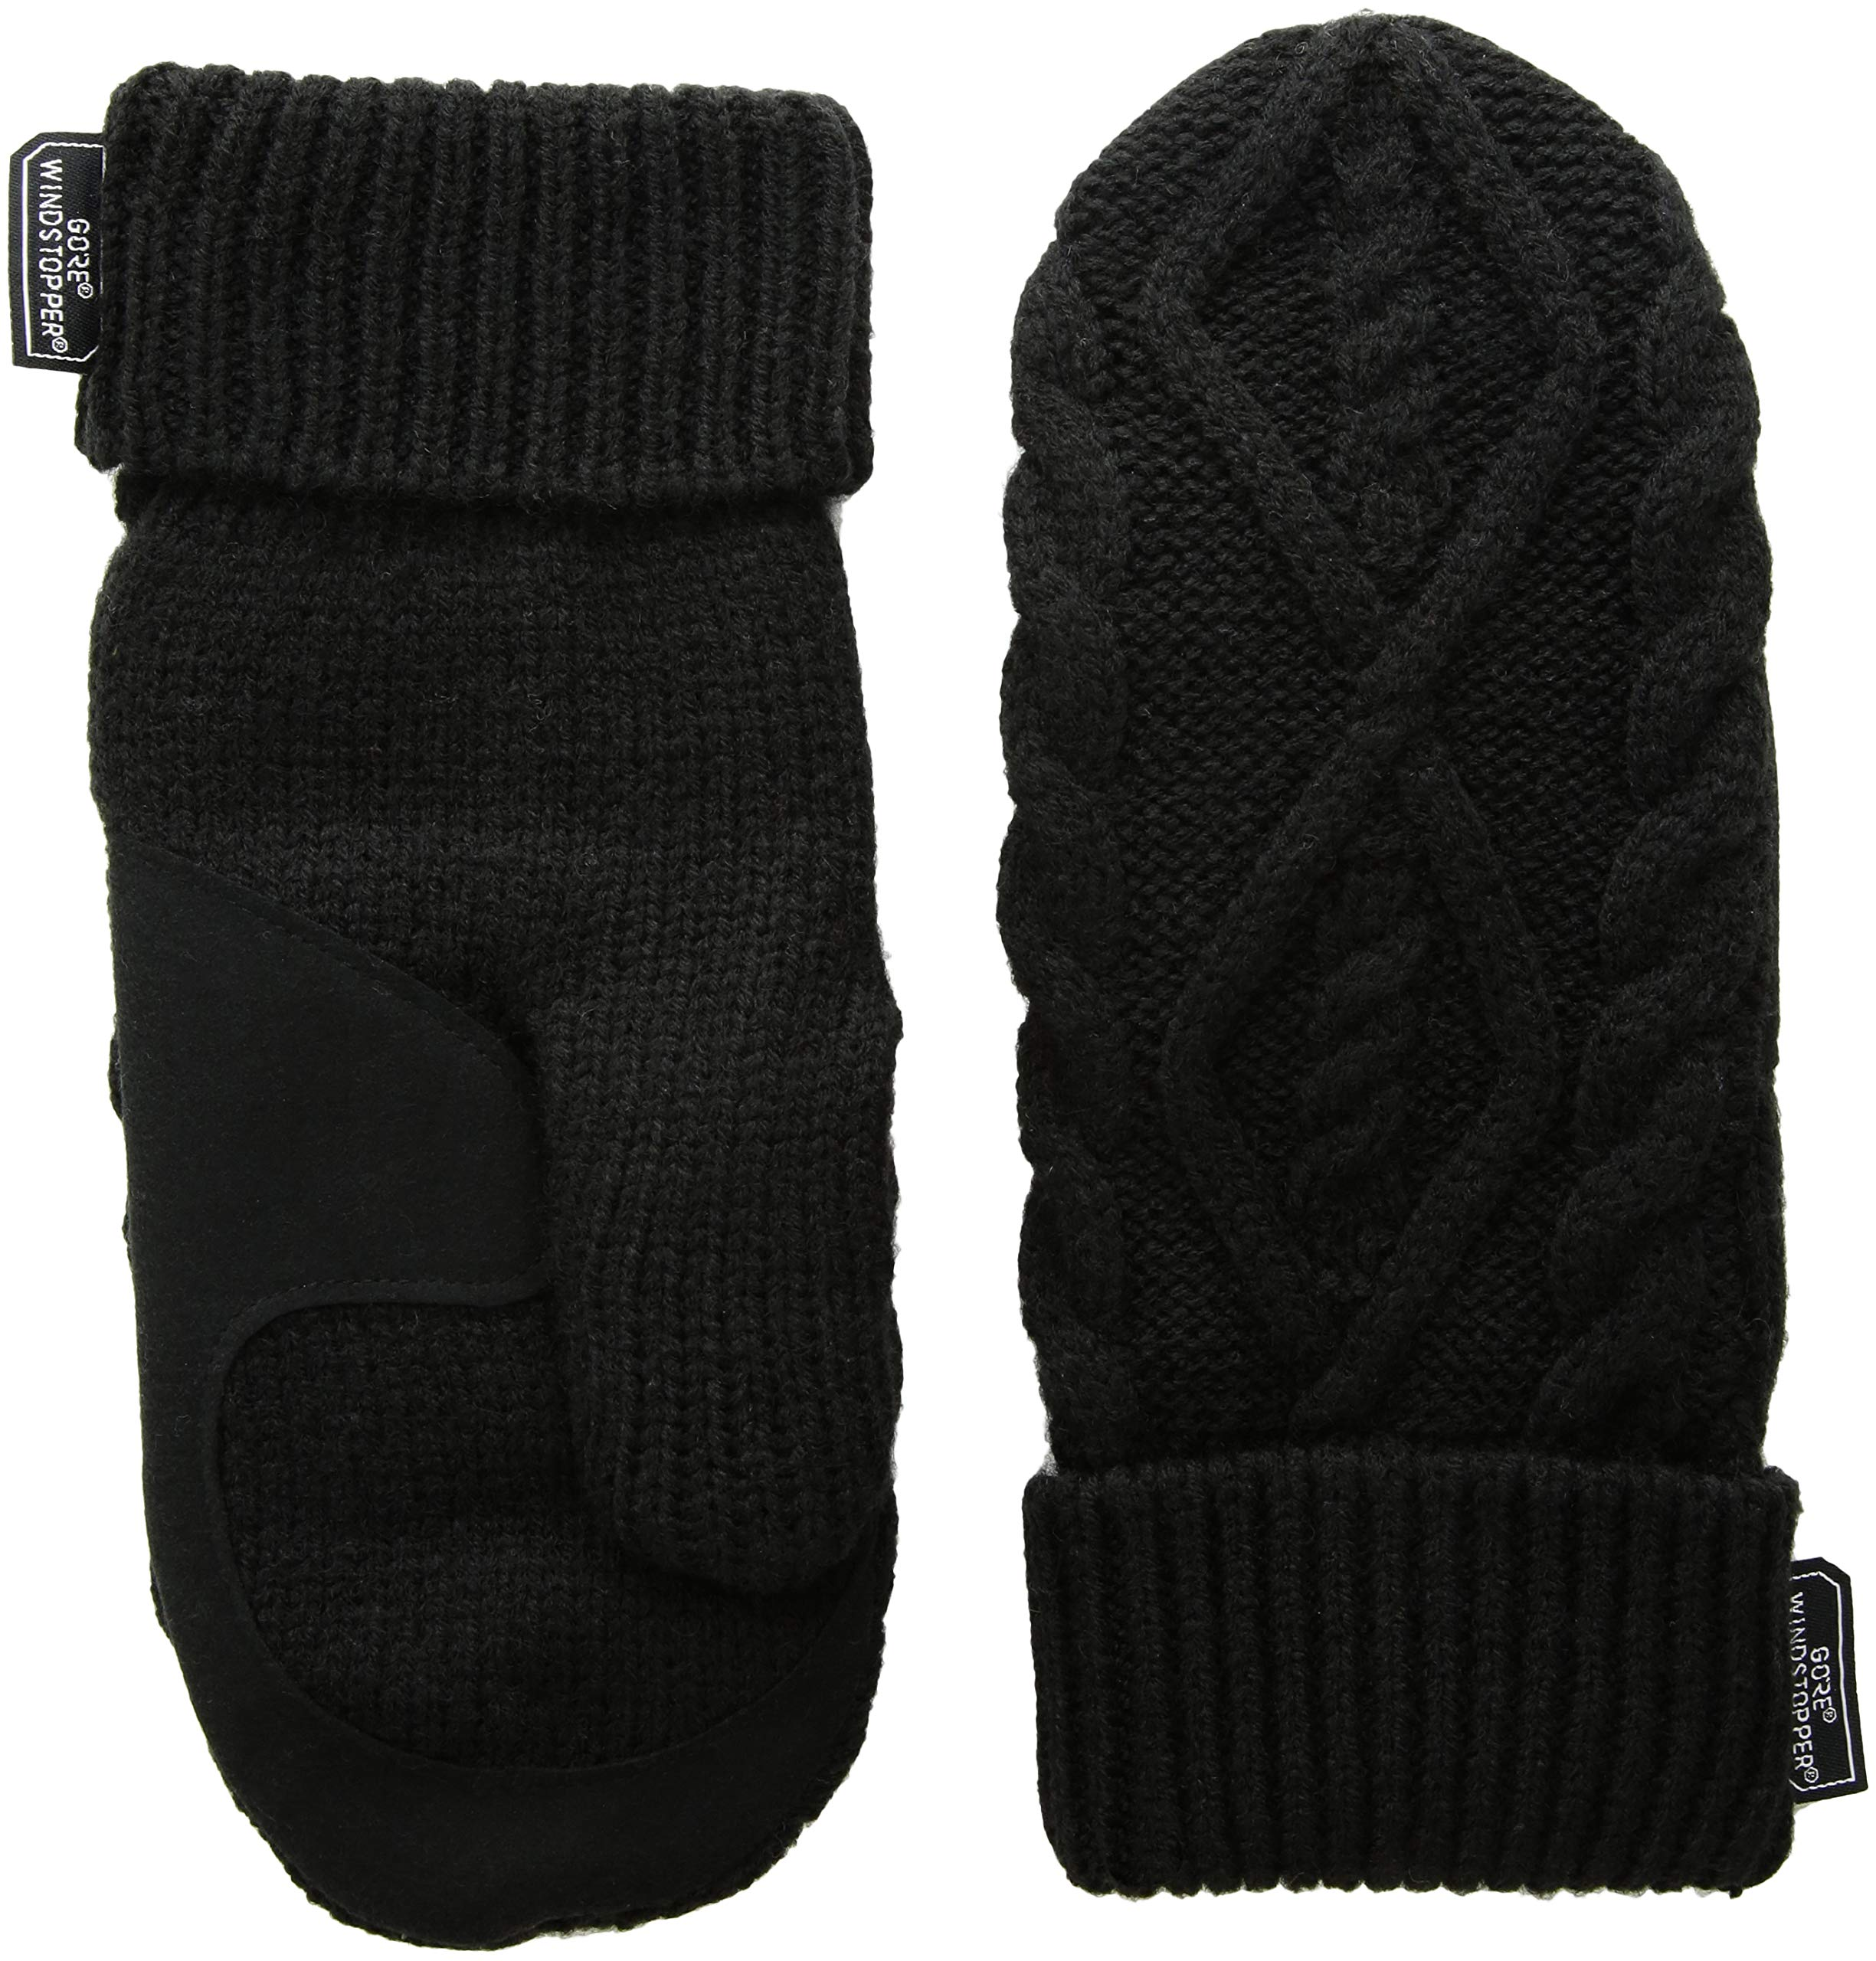 Outdoor Research Women's W's Lodgeside Mitts,  black,  S by Outdoor Research